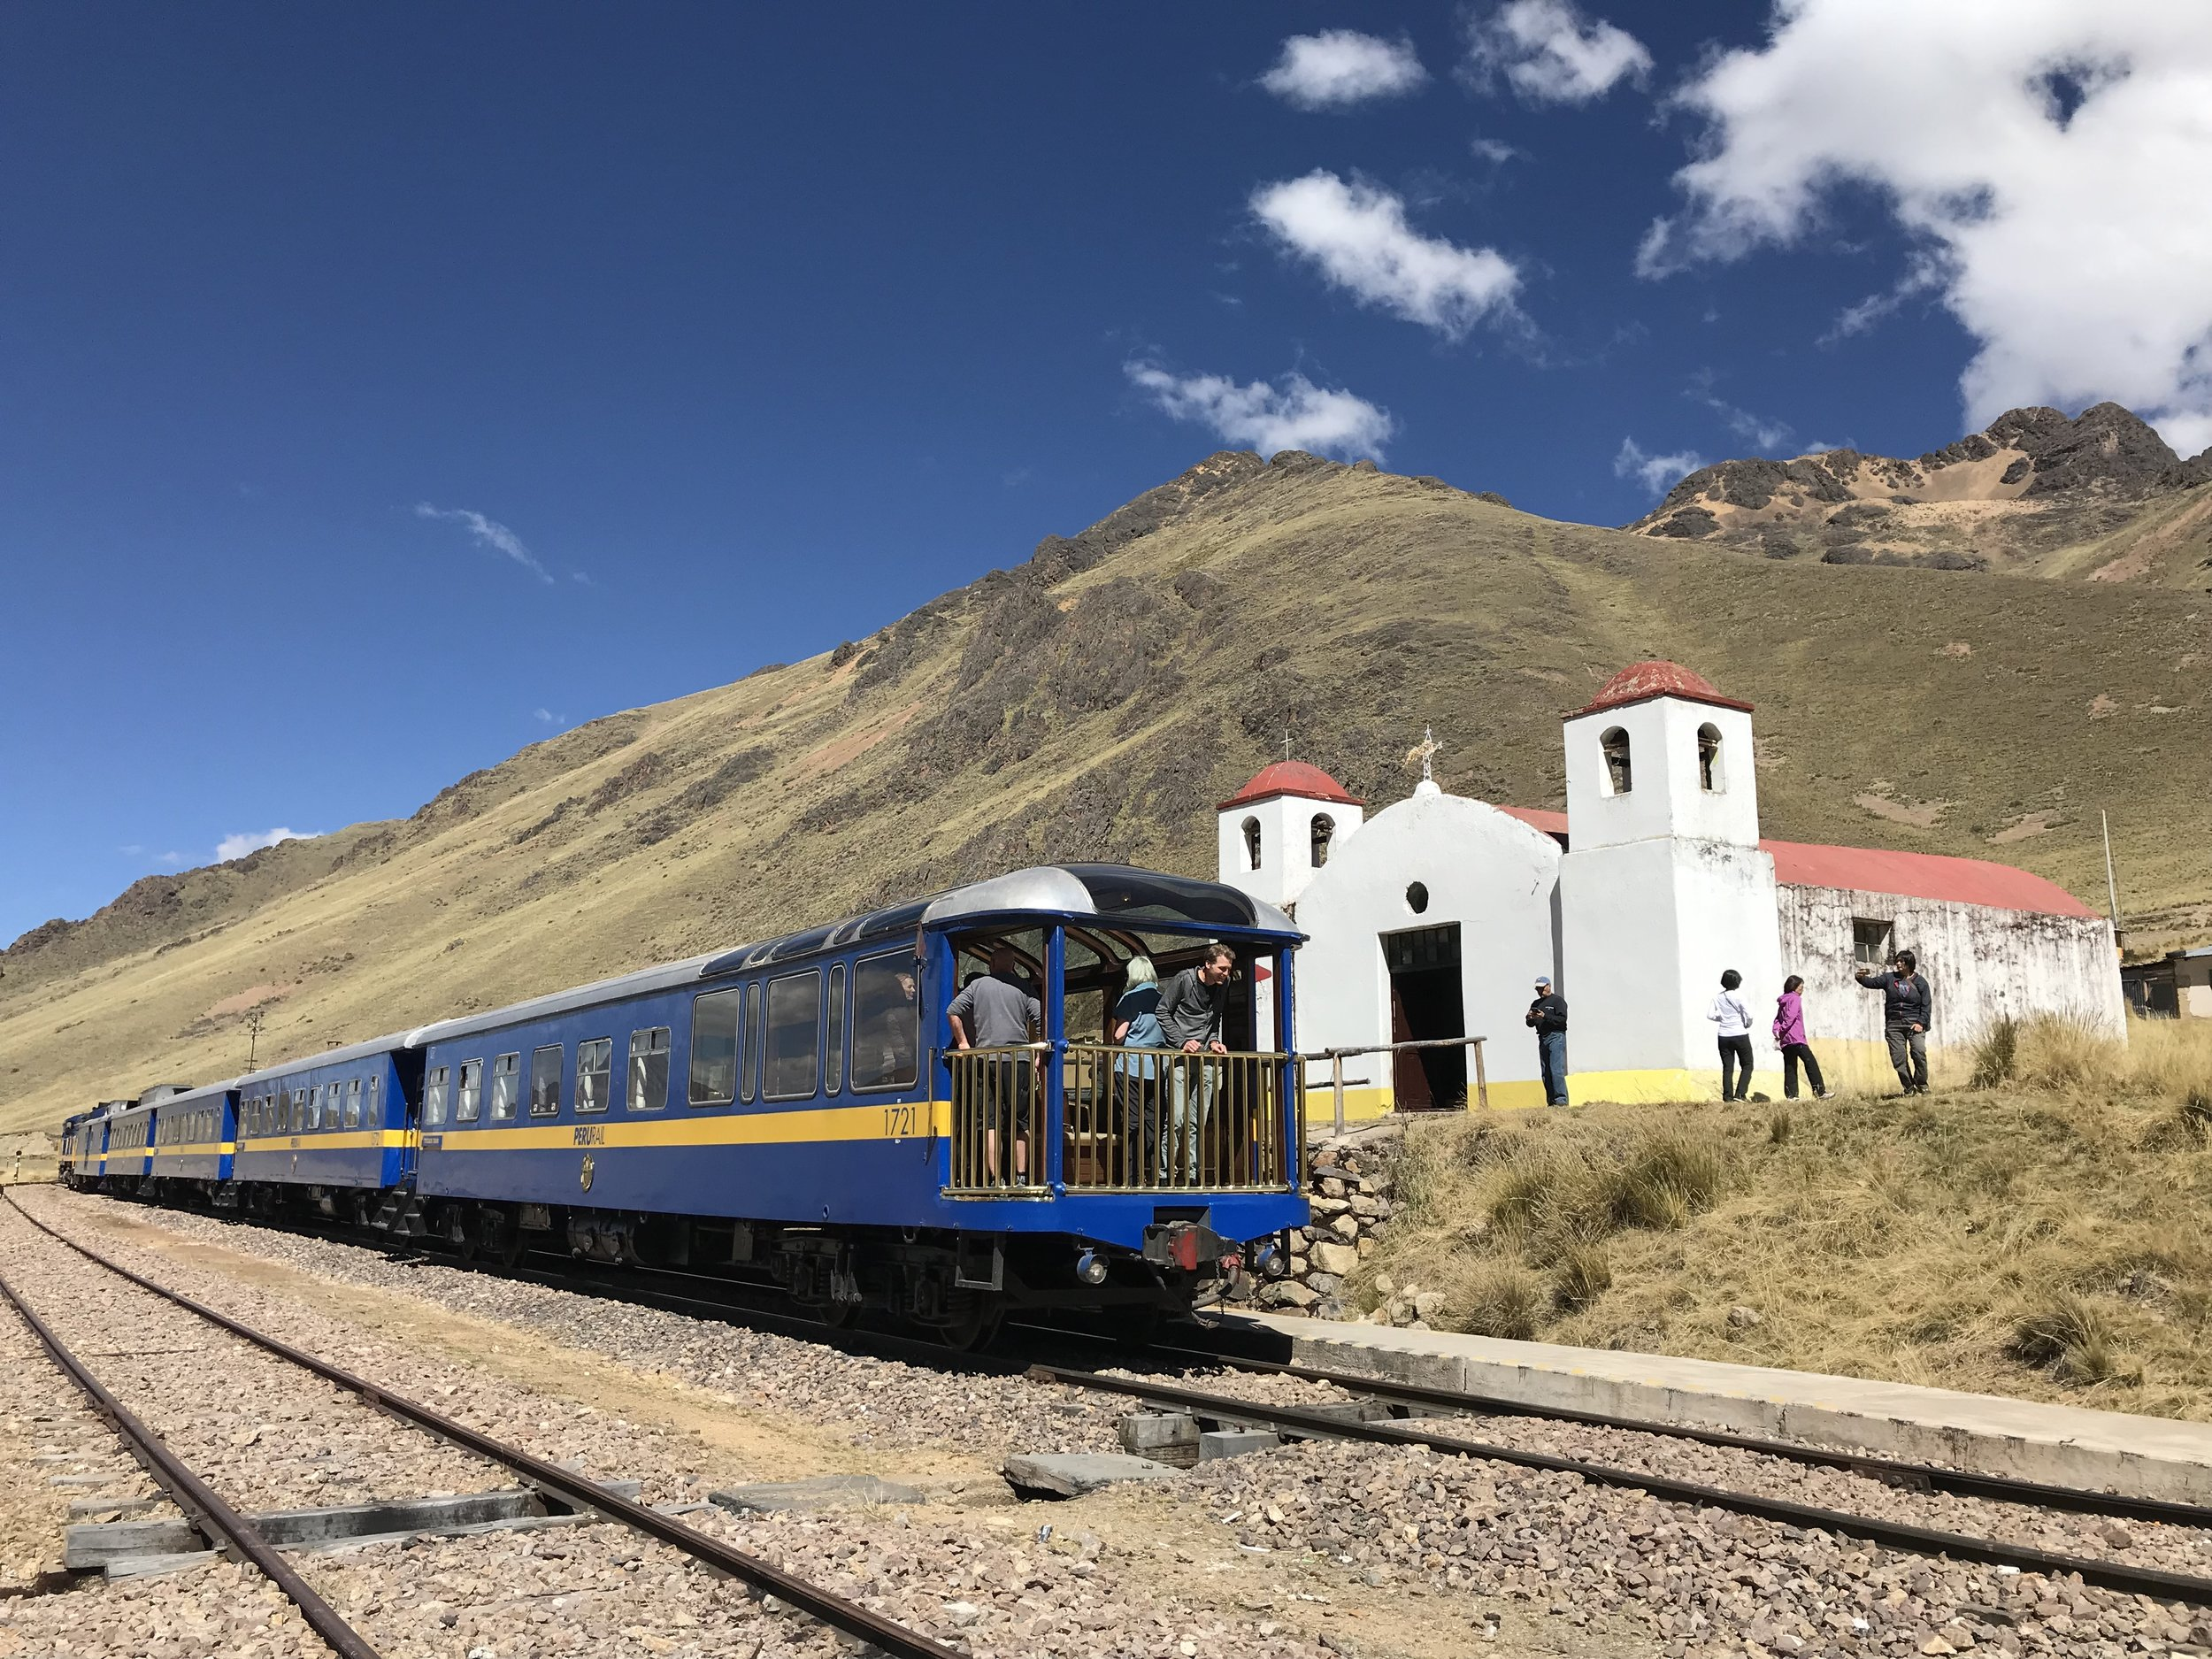 Train, plane, automobile, or by foot. Where would you go this summer if given the option?